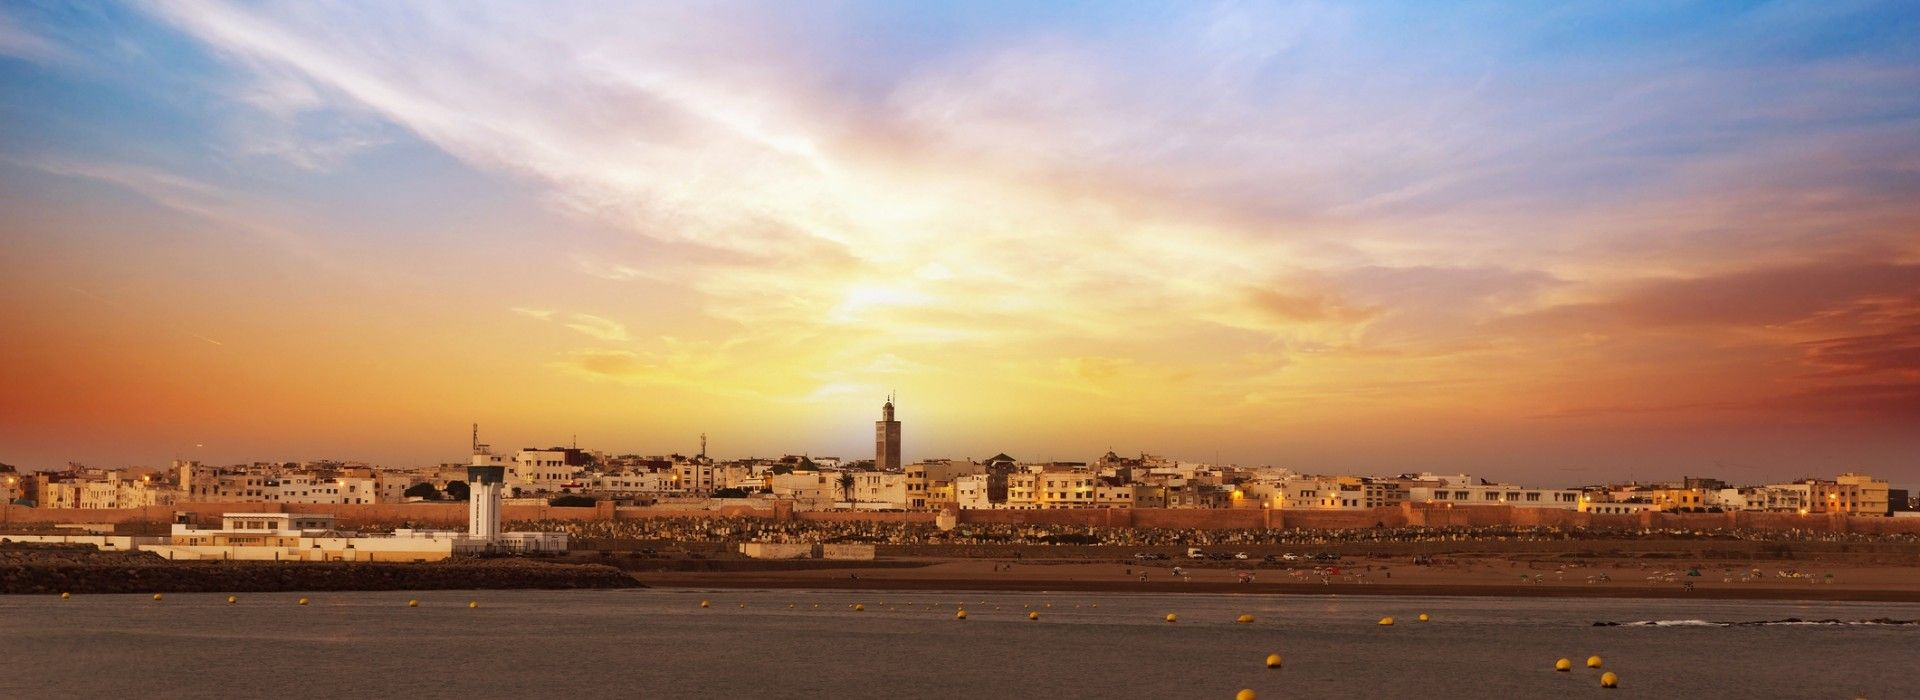 Cultural, religious and historic sites Tours in Essaouira